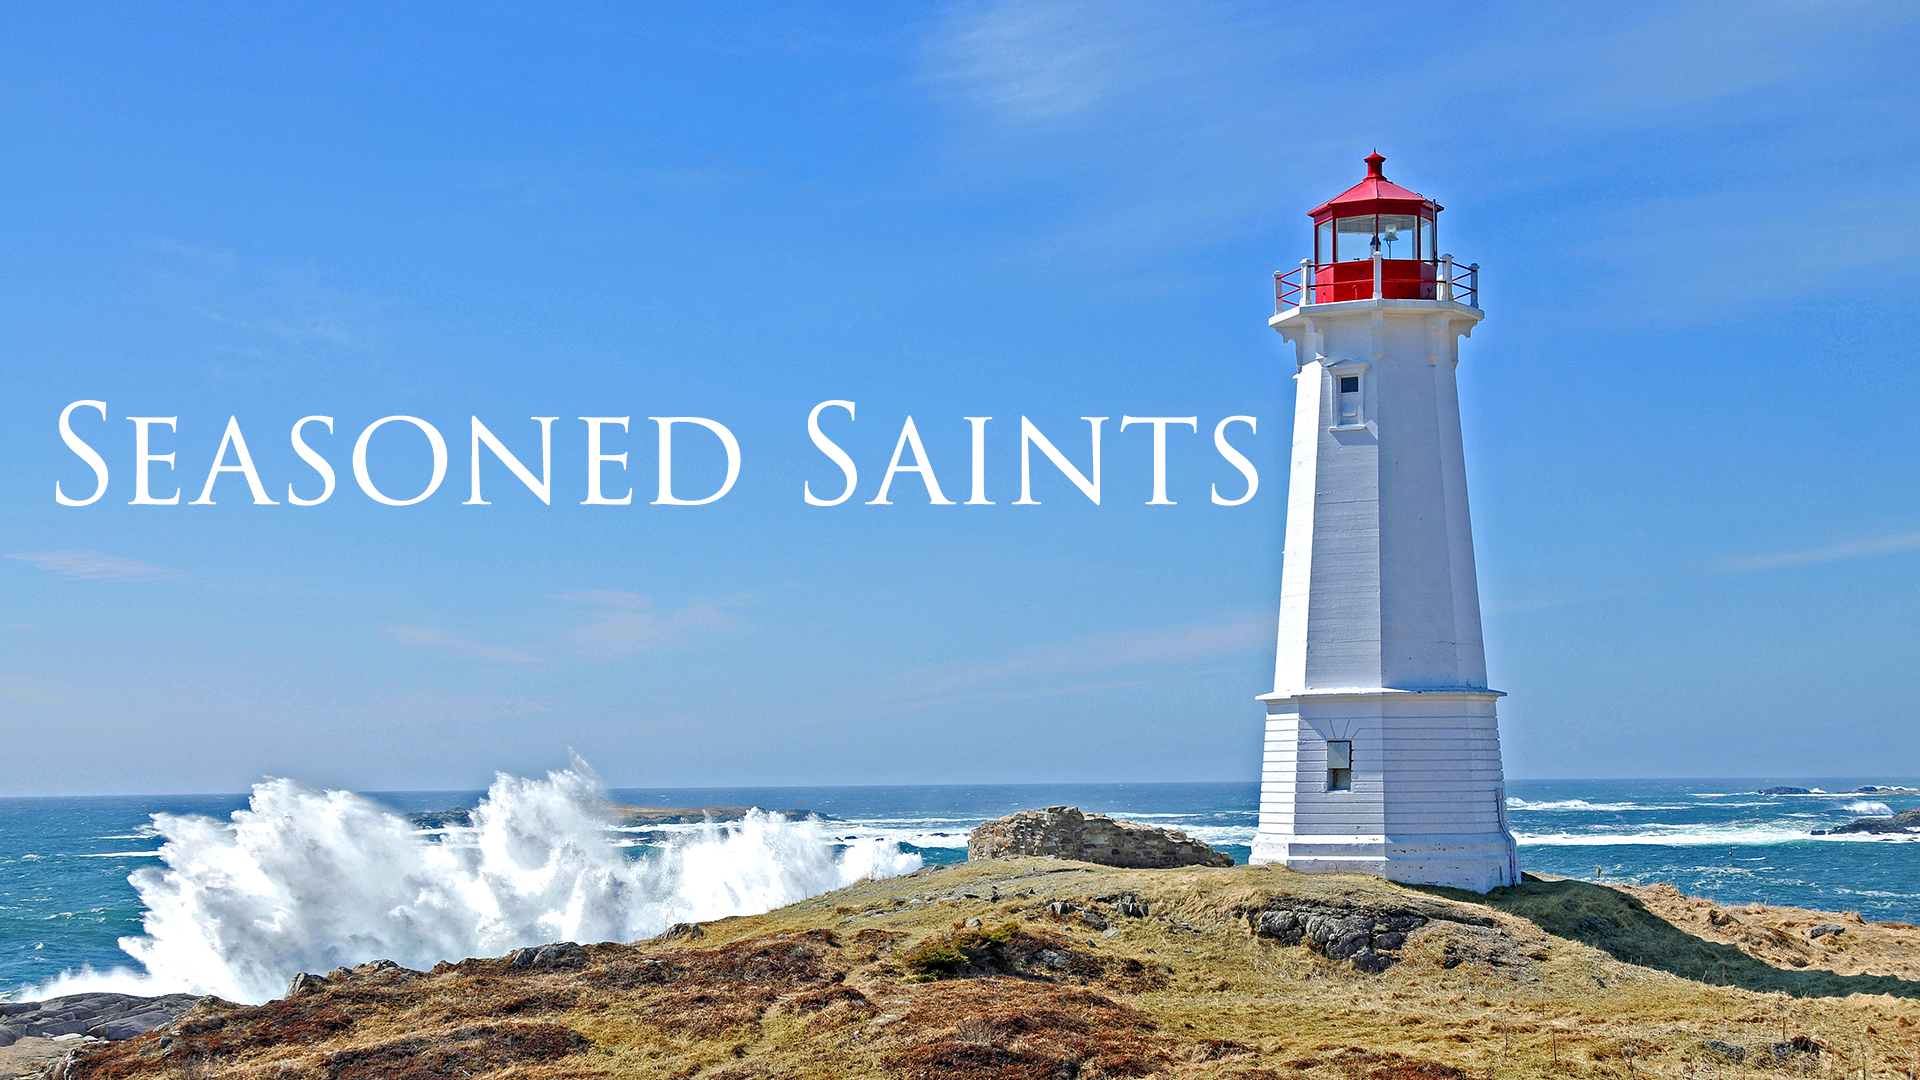 Seasoned Saints Lighthouse_No Date image